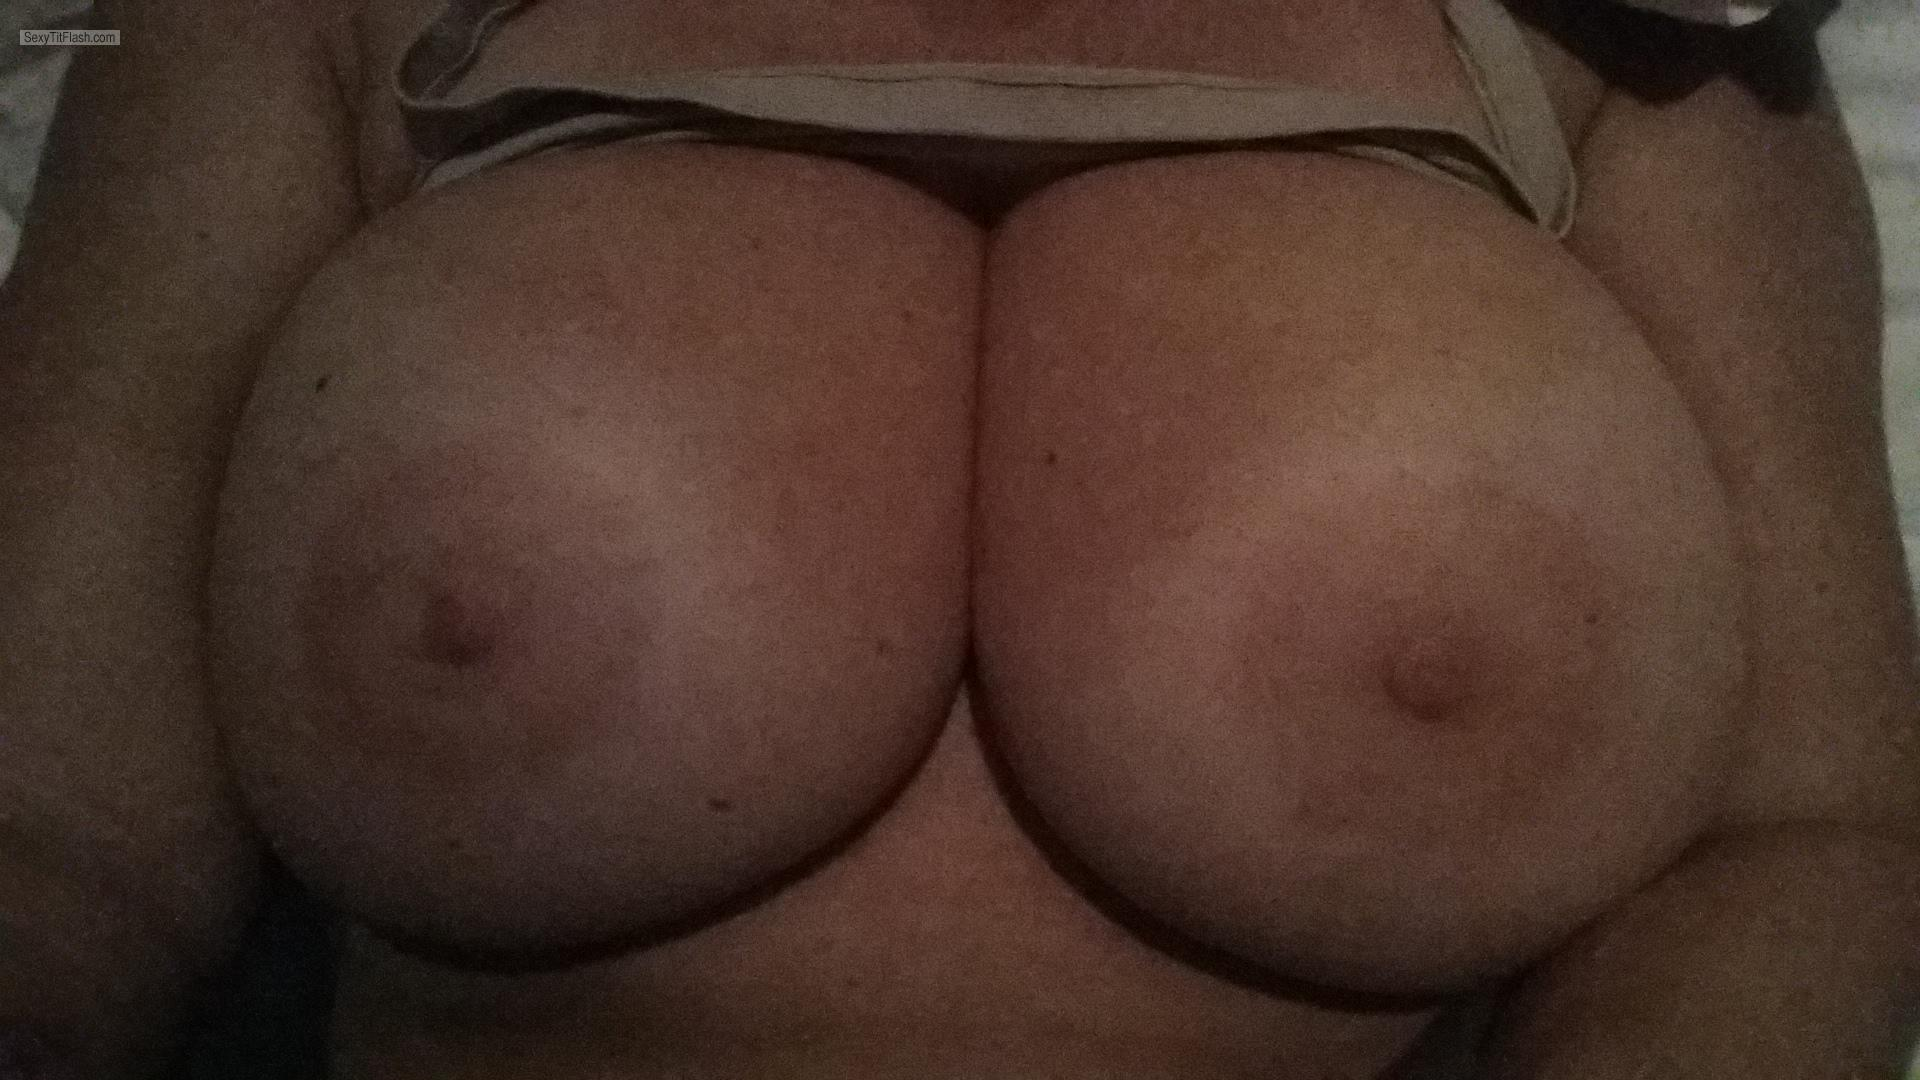 Big tits in texas